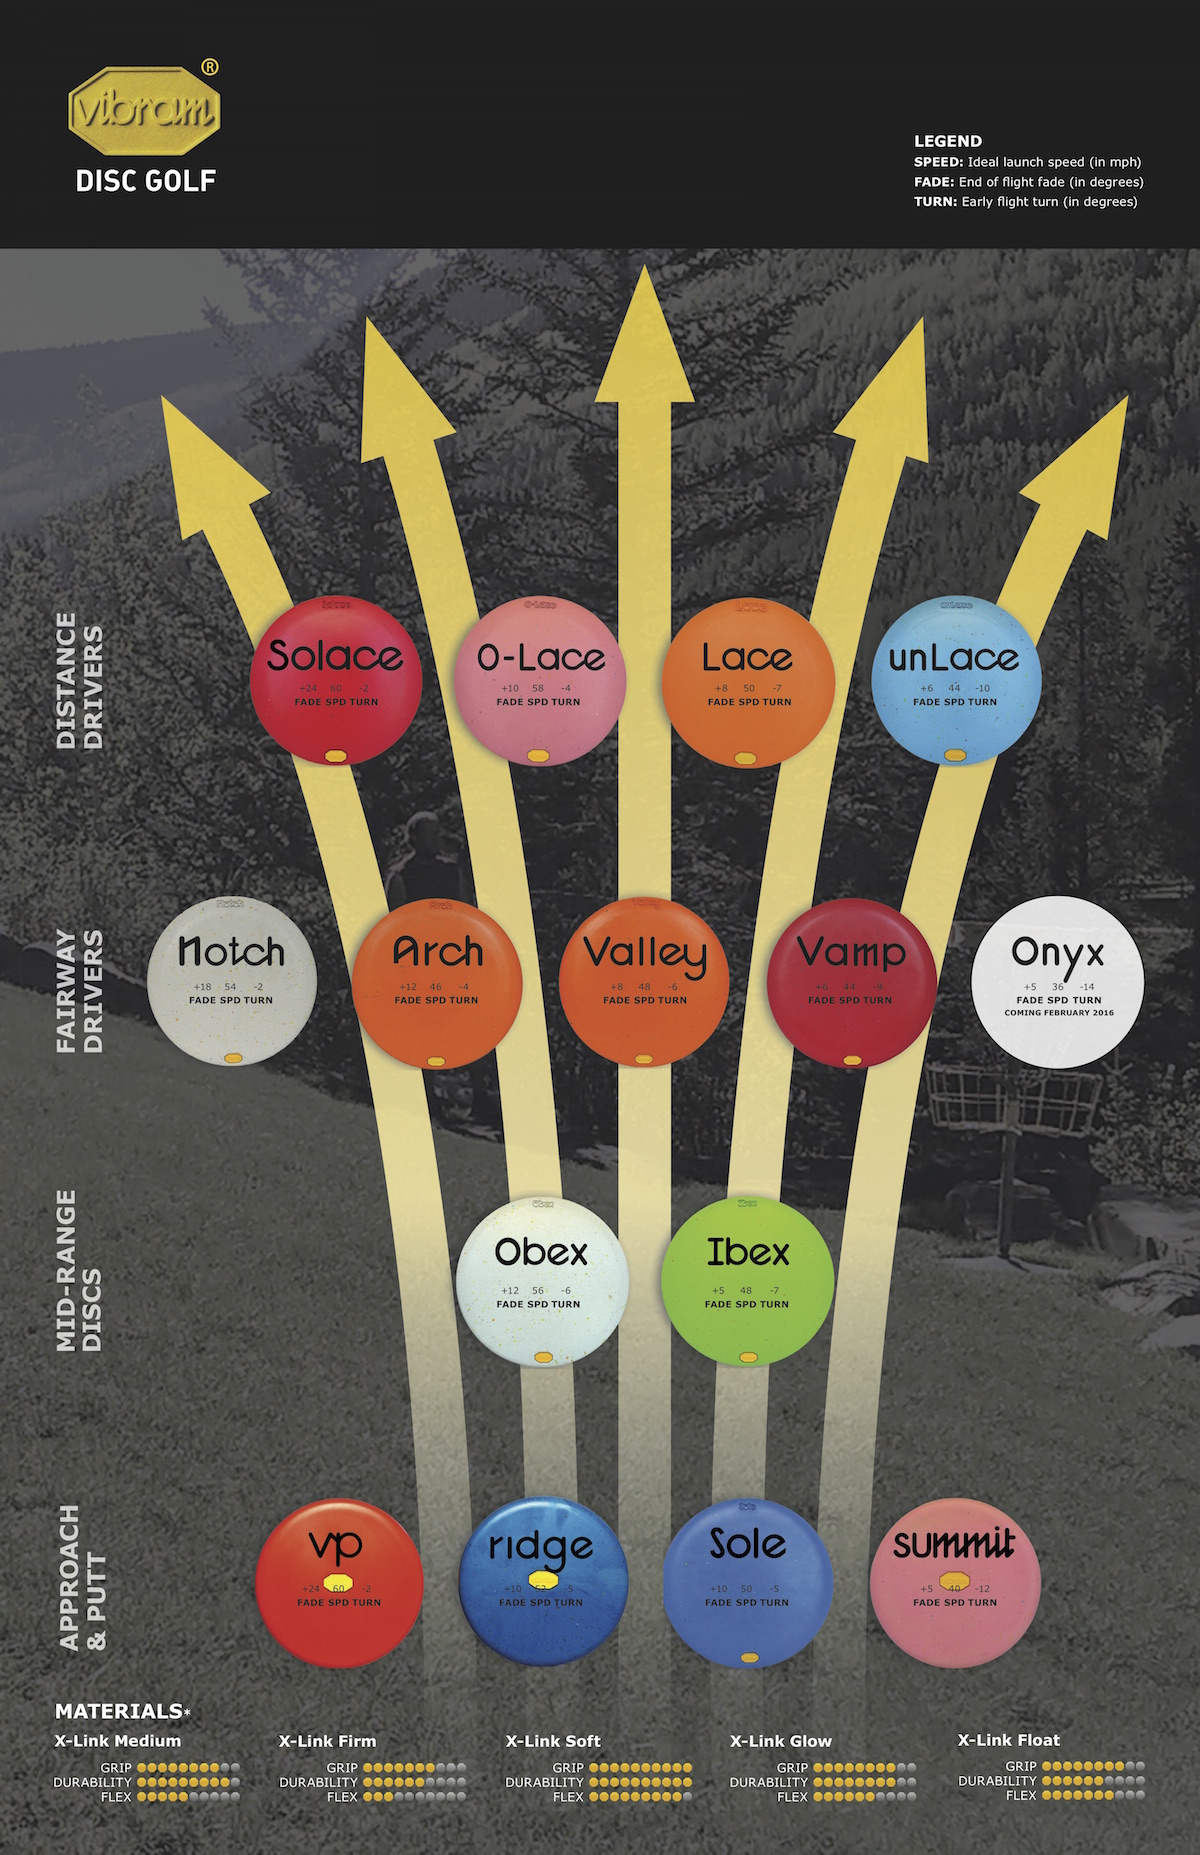 how to pick disc golf discs